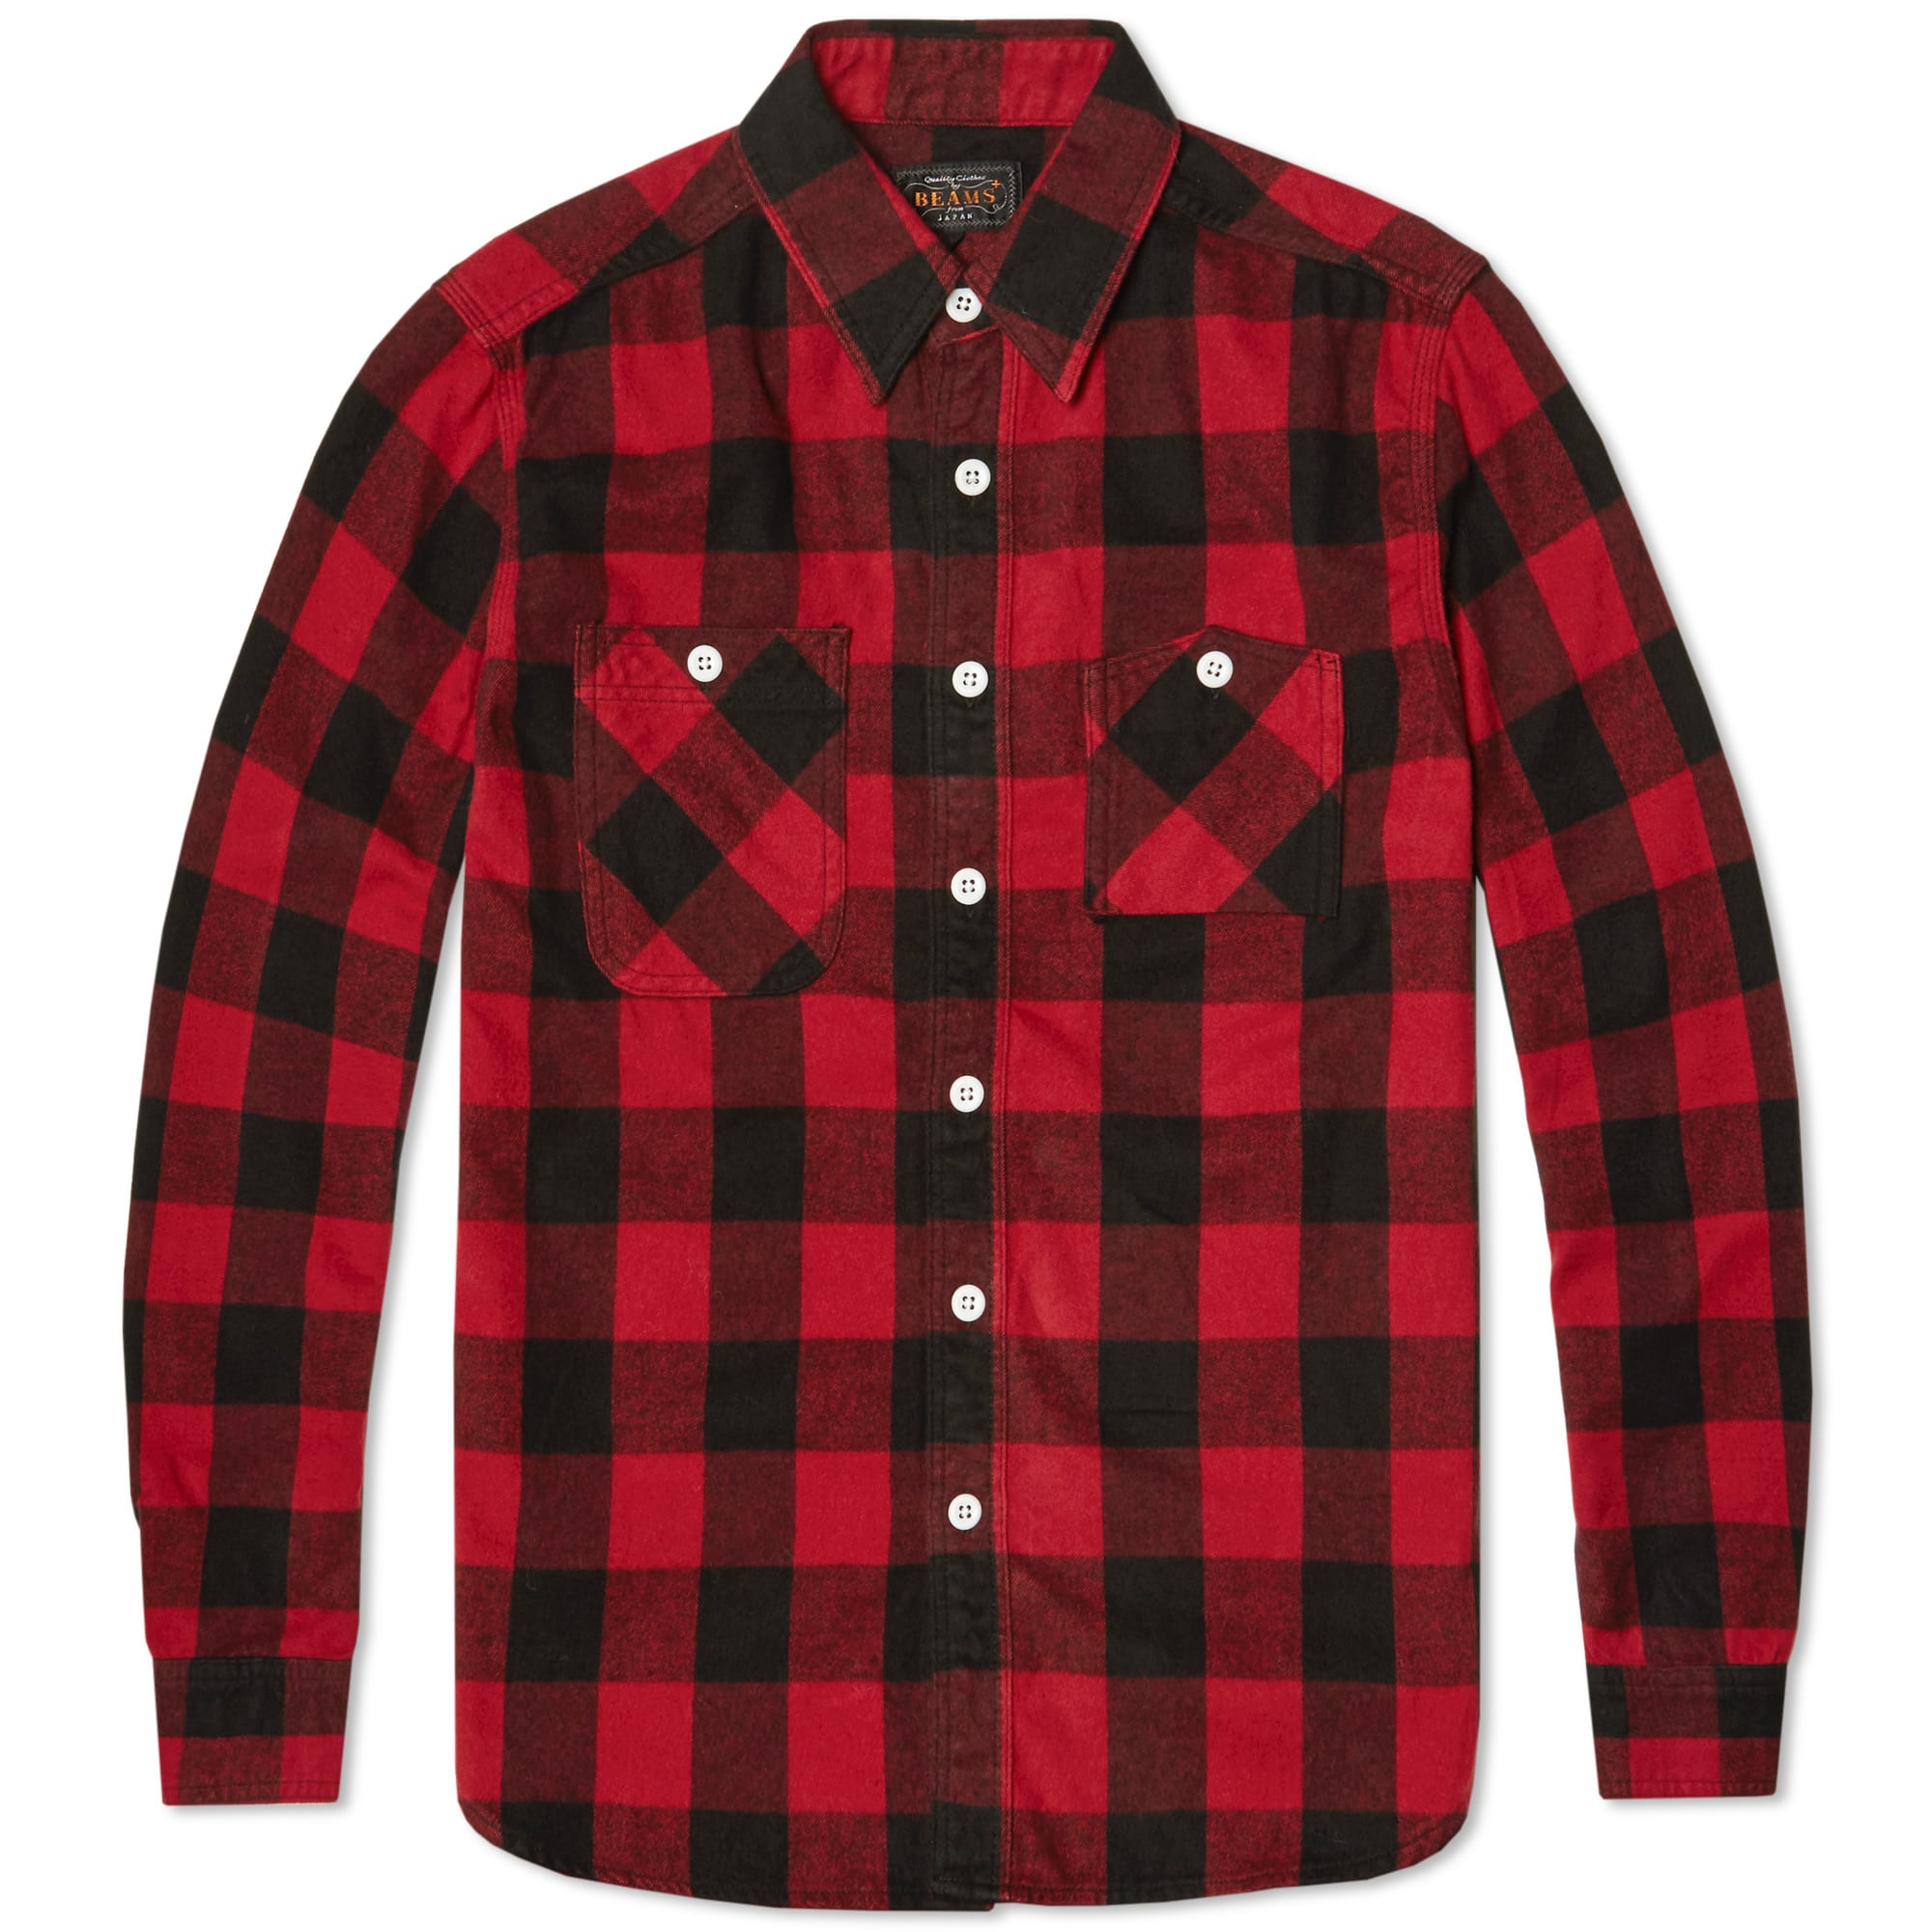 Find a huge selection of men's shirts at Dickies from long sleeve and polos to tees. Our work shirts for men offer durability, style & comfort all in one. Williamson-Dickie Mfg. Co.